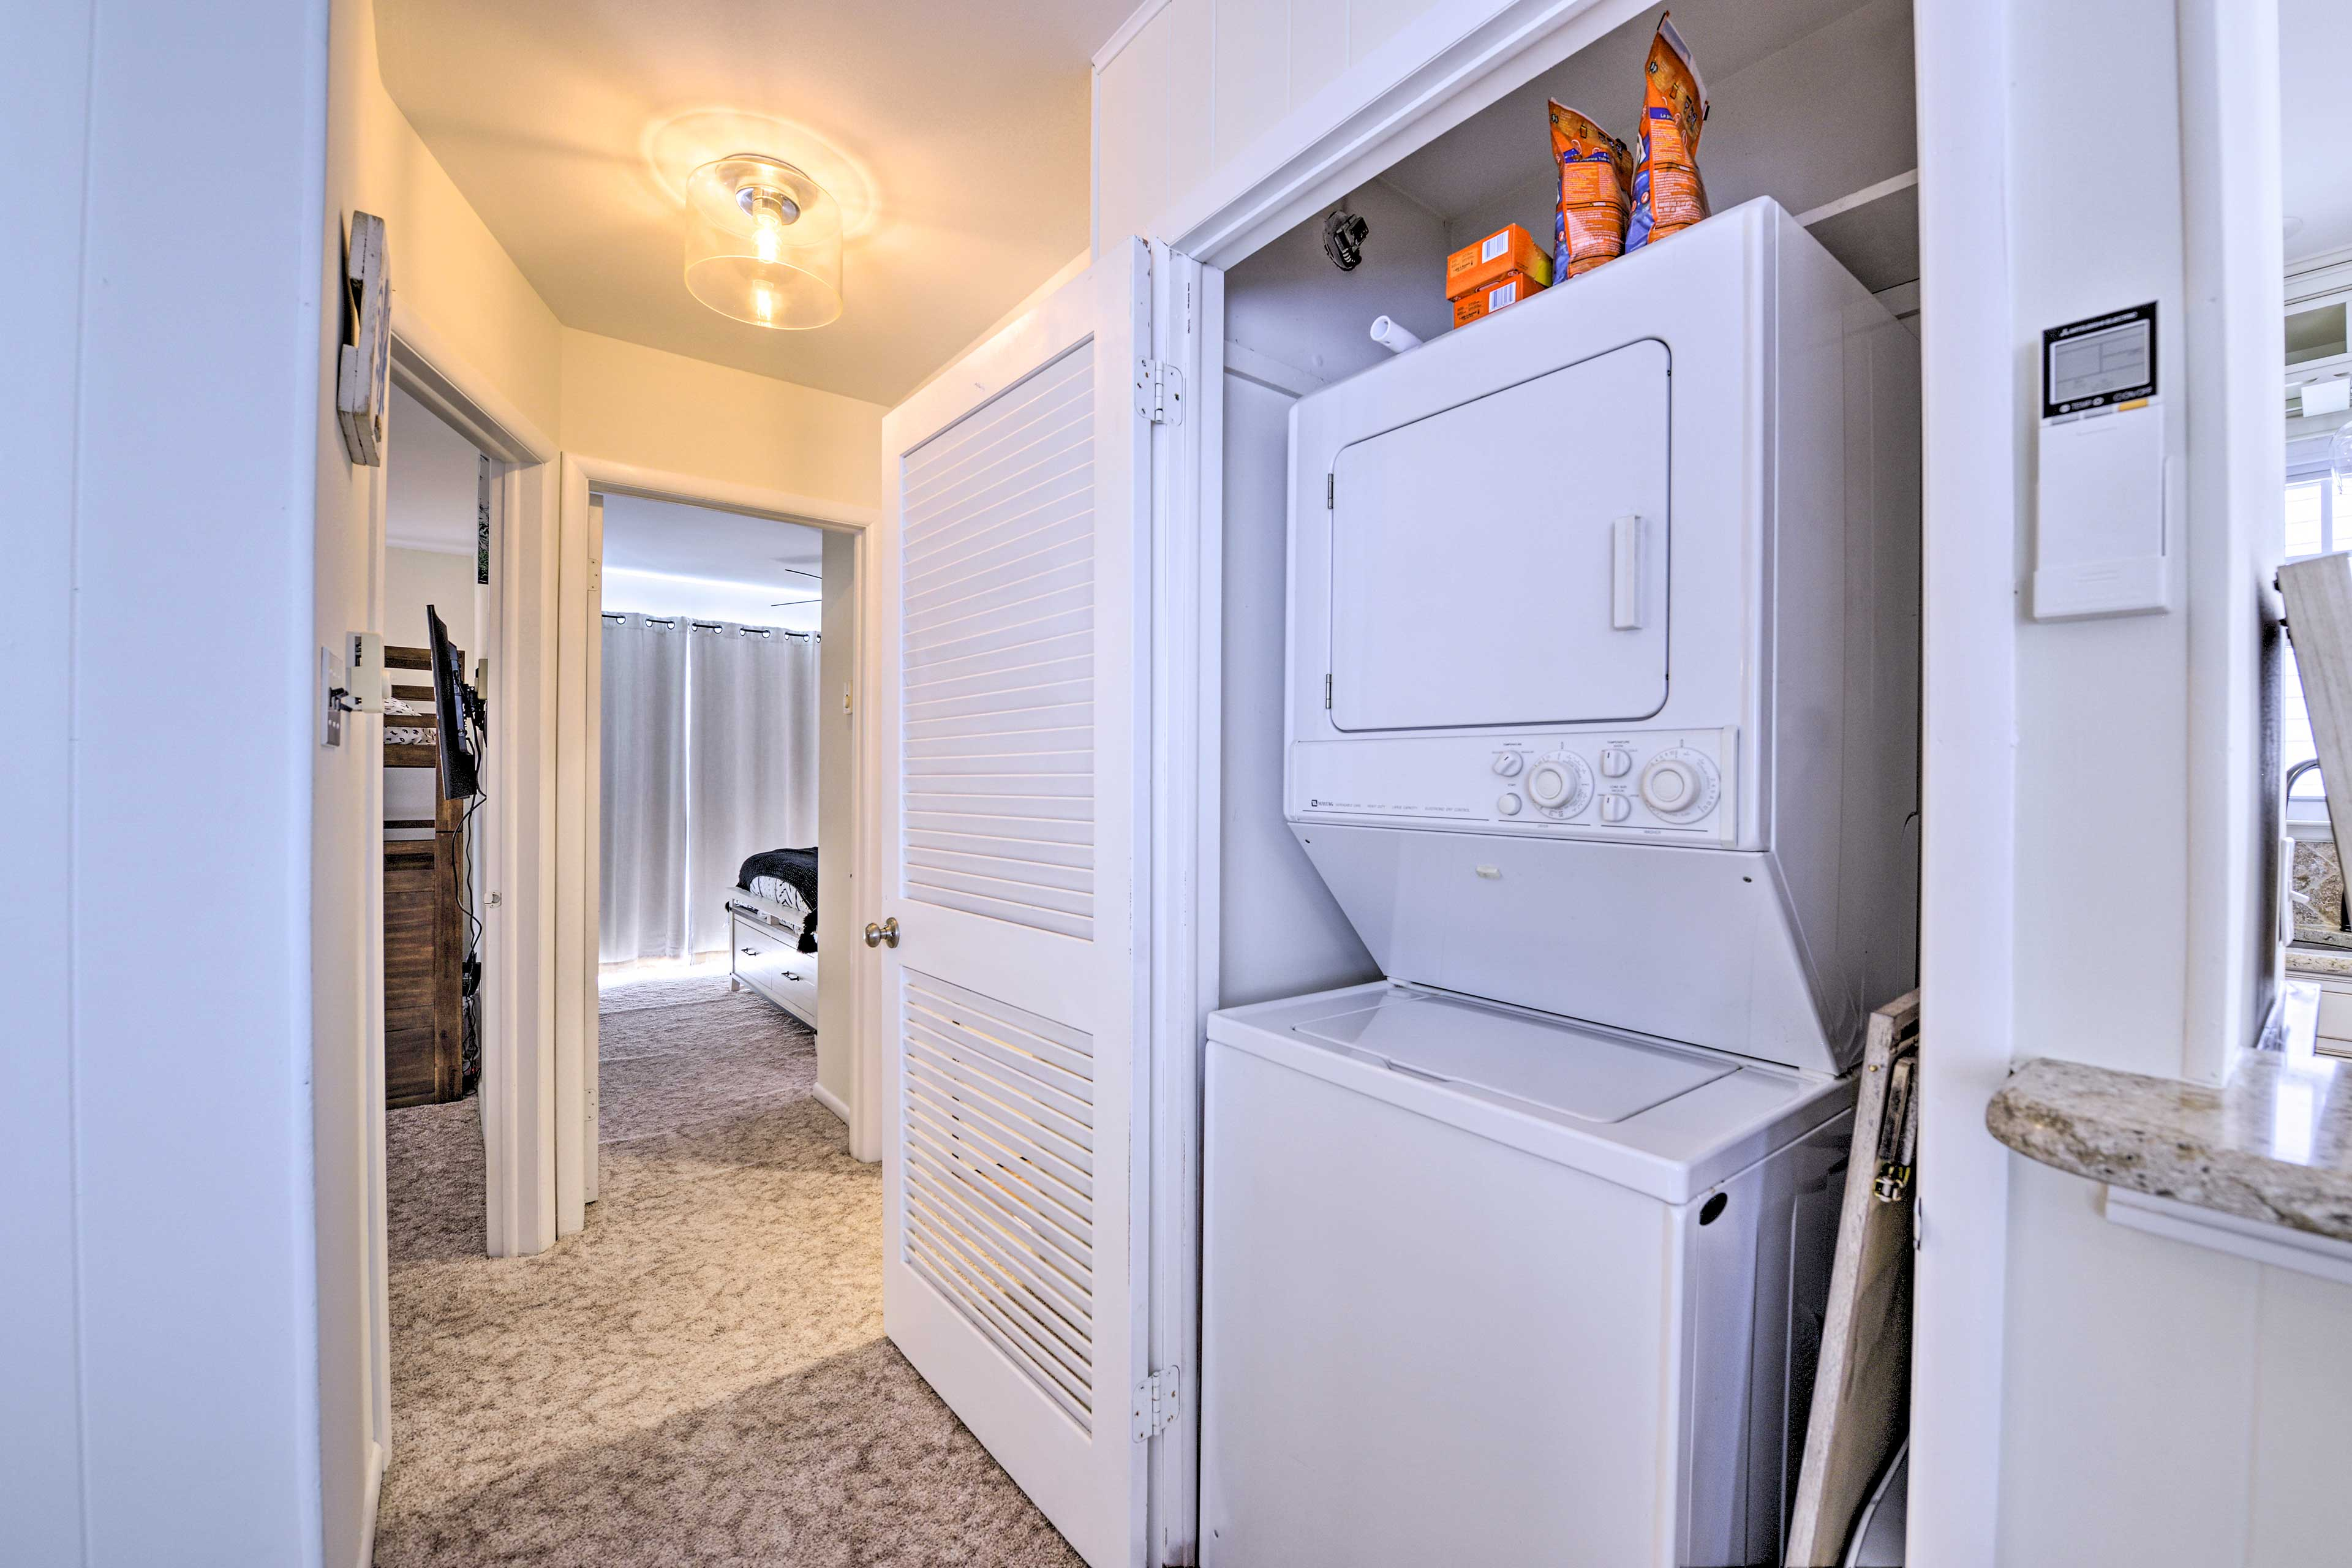 Keep all your beach clothes clean with the laundry machines!